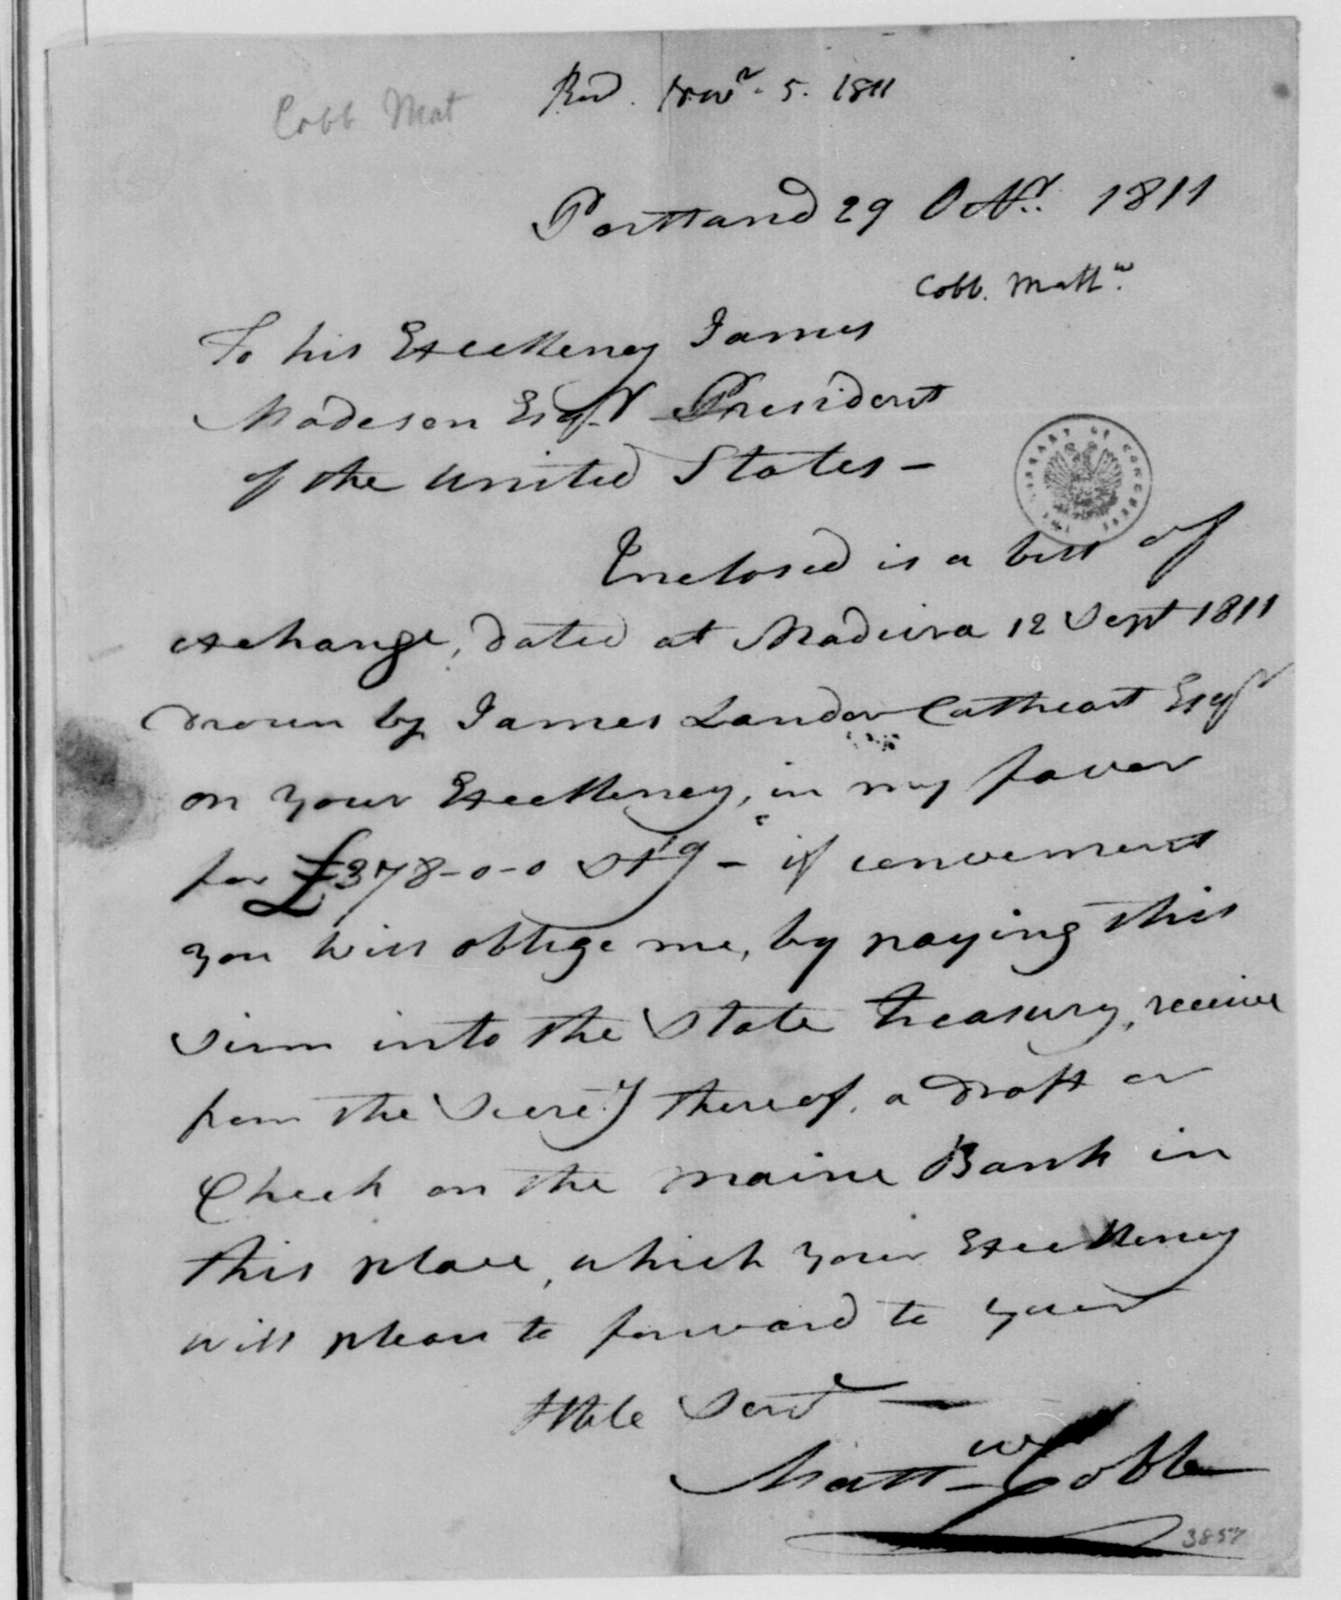 Matthew Cobb to James Madison, October 29, 1811. With Bill of Exchange.